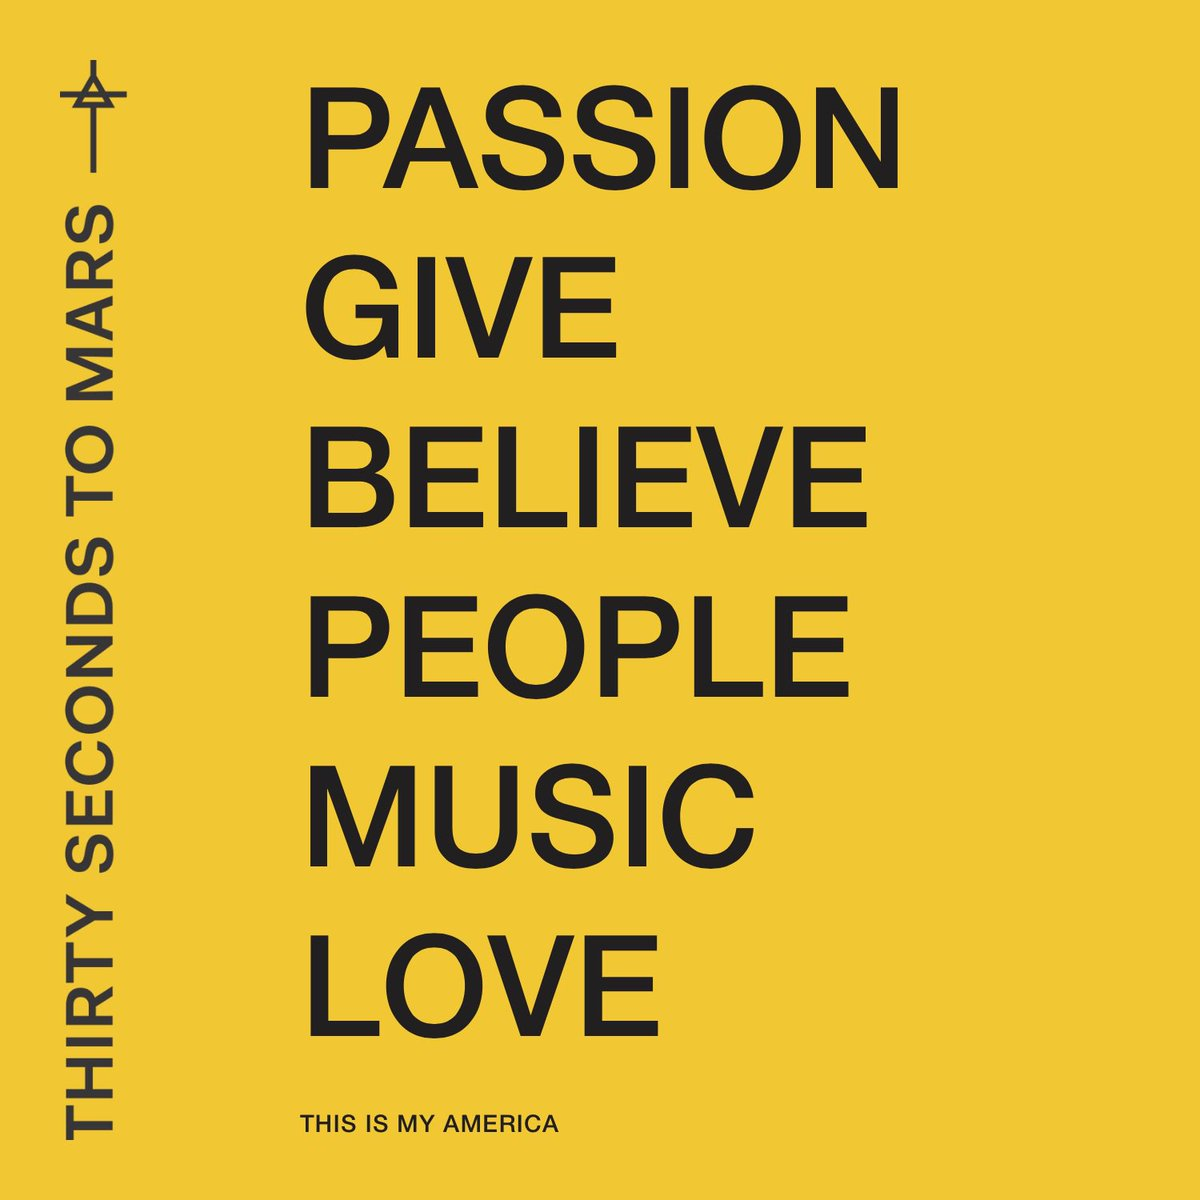 RT @tphilipps: So many things make up #MyAmerica! I love this album. @30SECONDSTOMARS @JaredLeto #MarsAmerica https://t.co/HpRACV1IvM